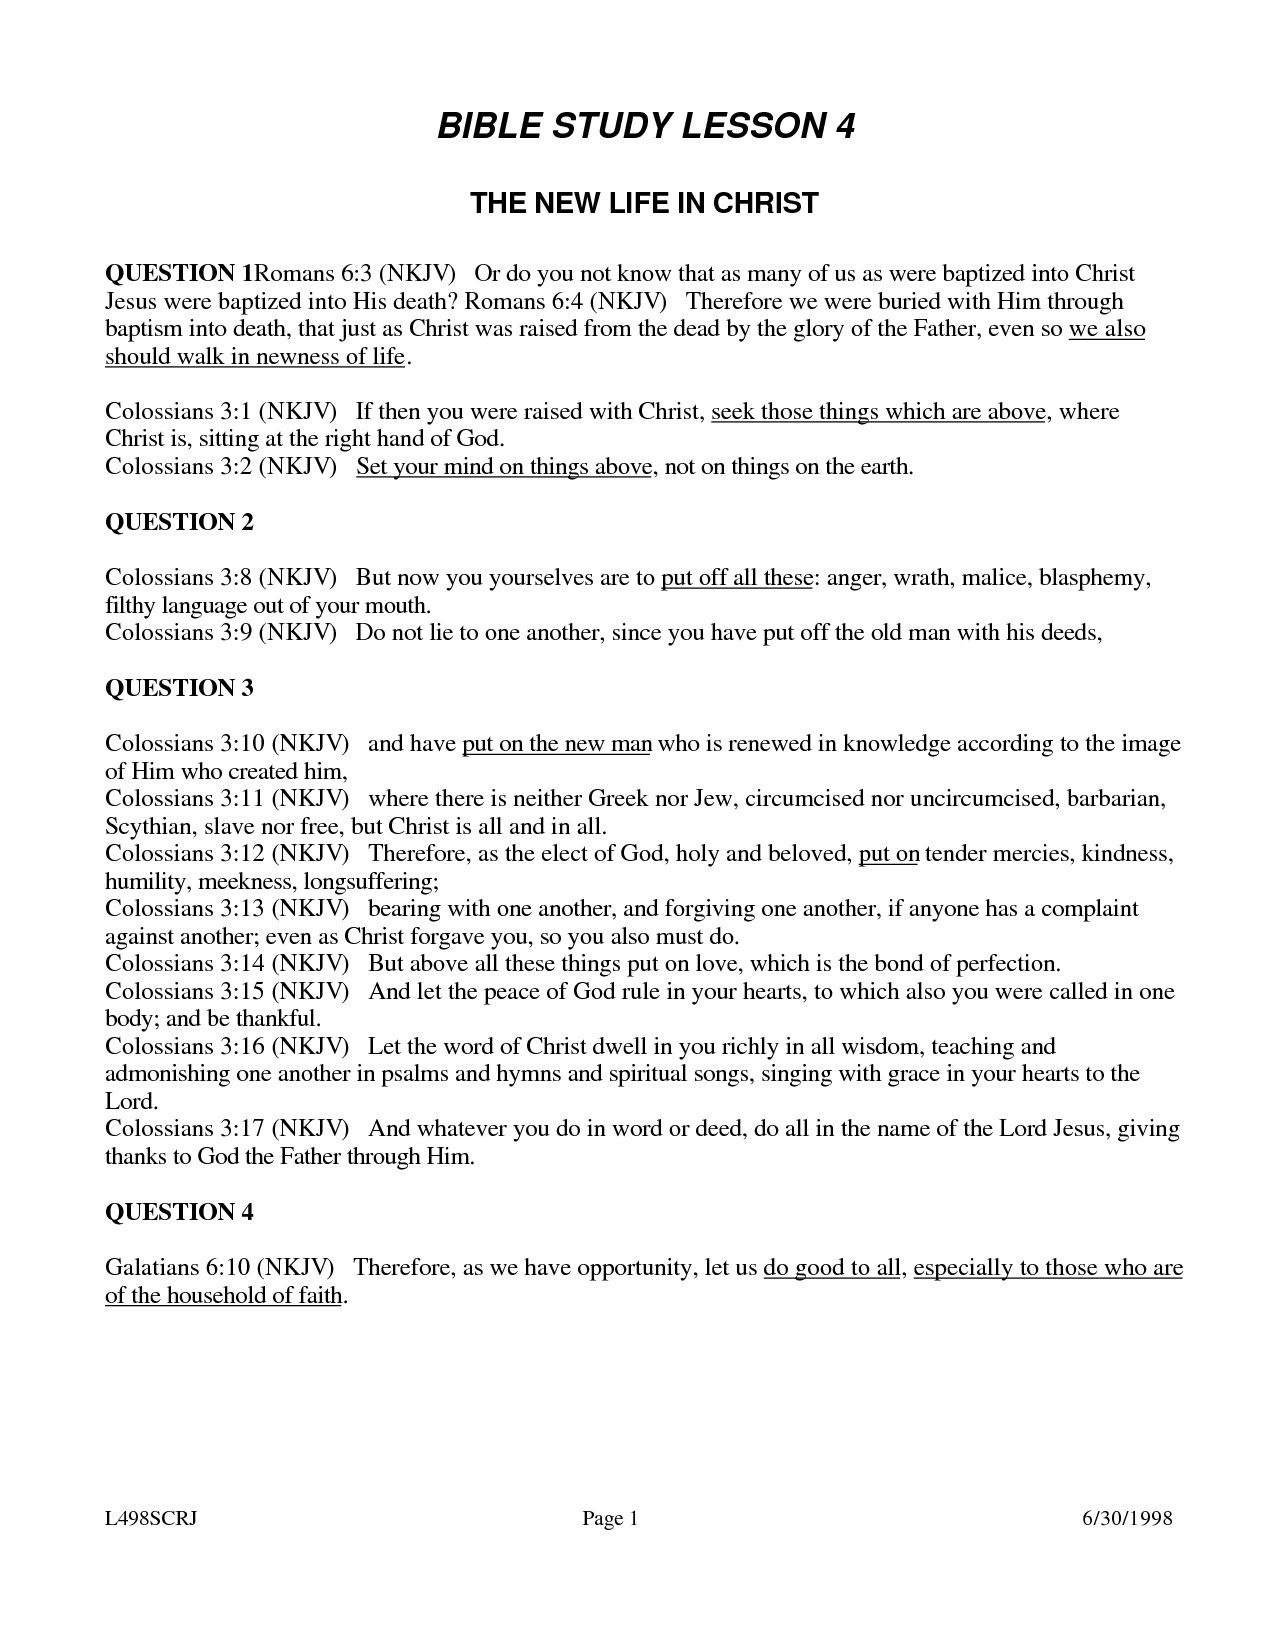 Weekly Bible Study Lesson - Free Printable Bible Study Lessons With Questions And Answers